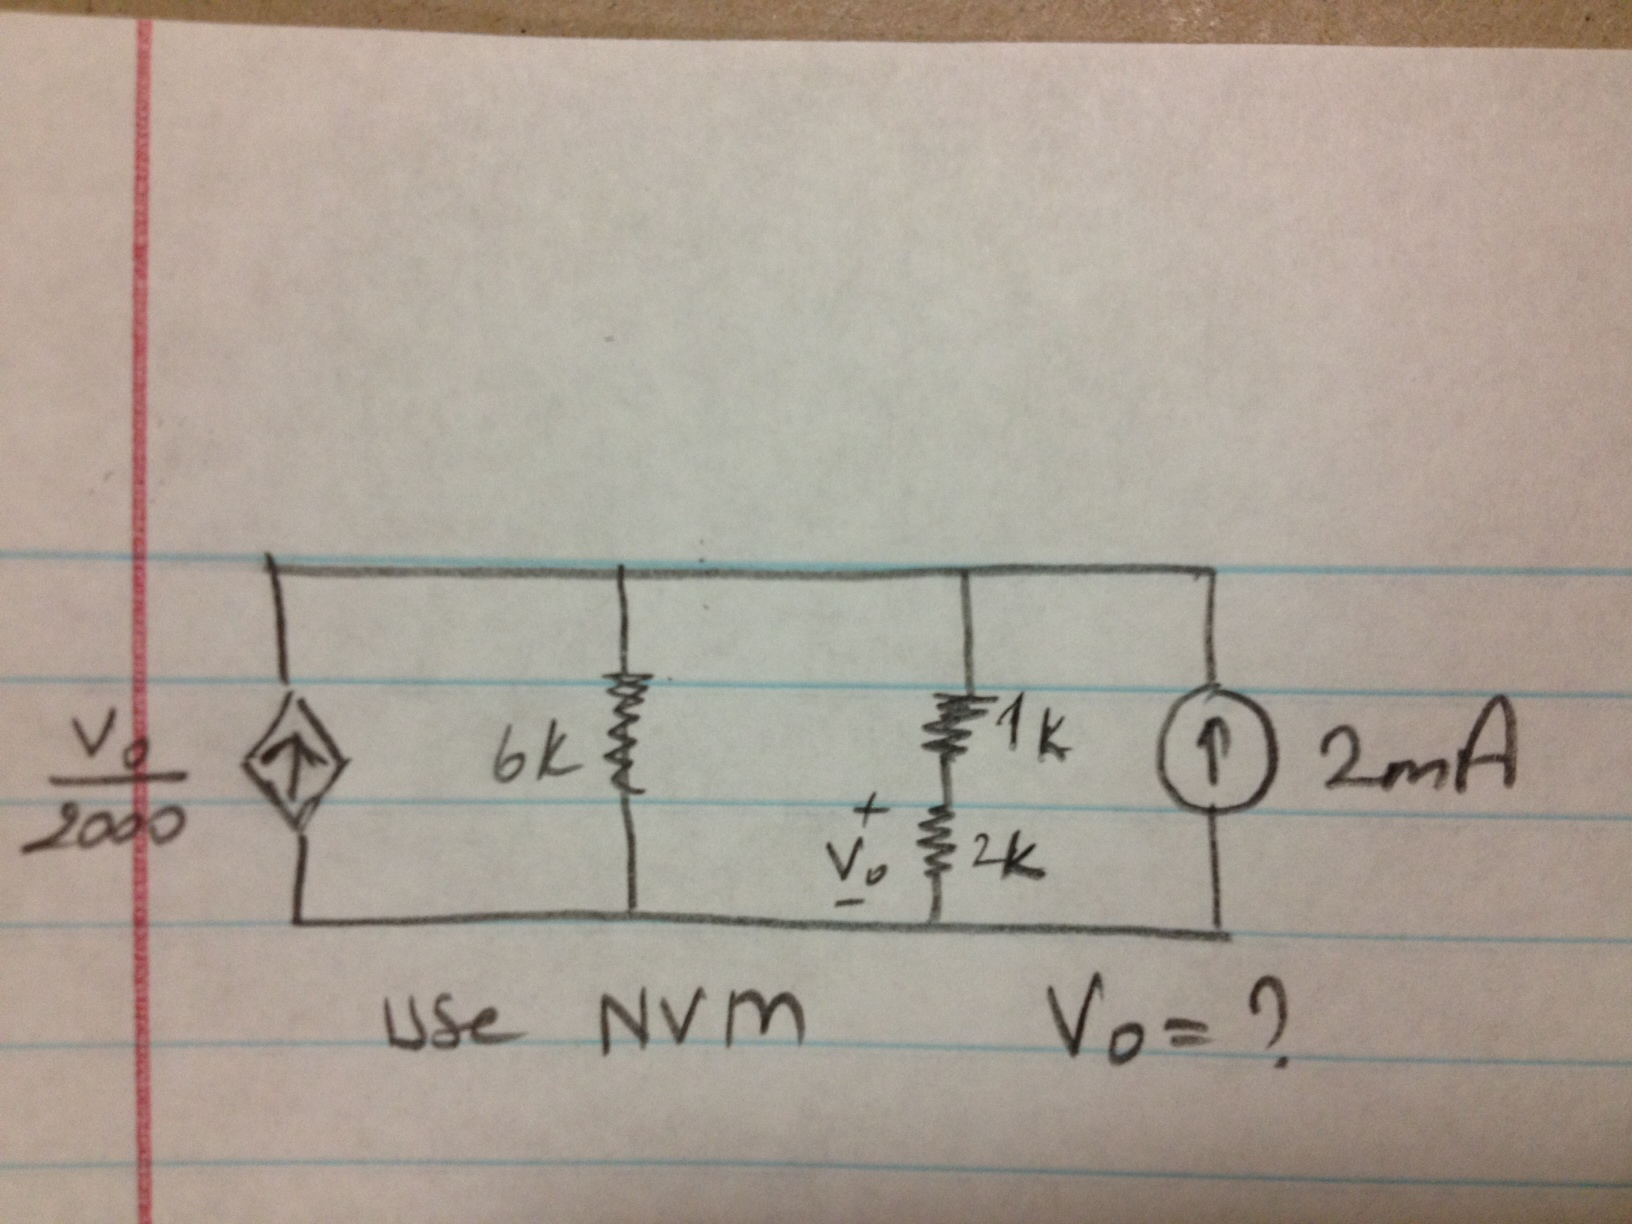 please use NVM (node voltage method) to solve it!